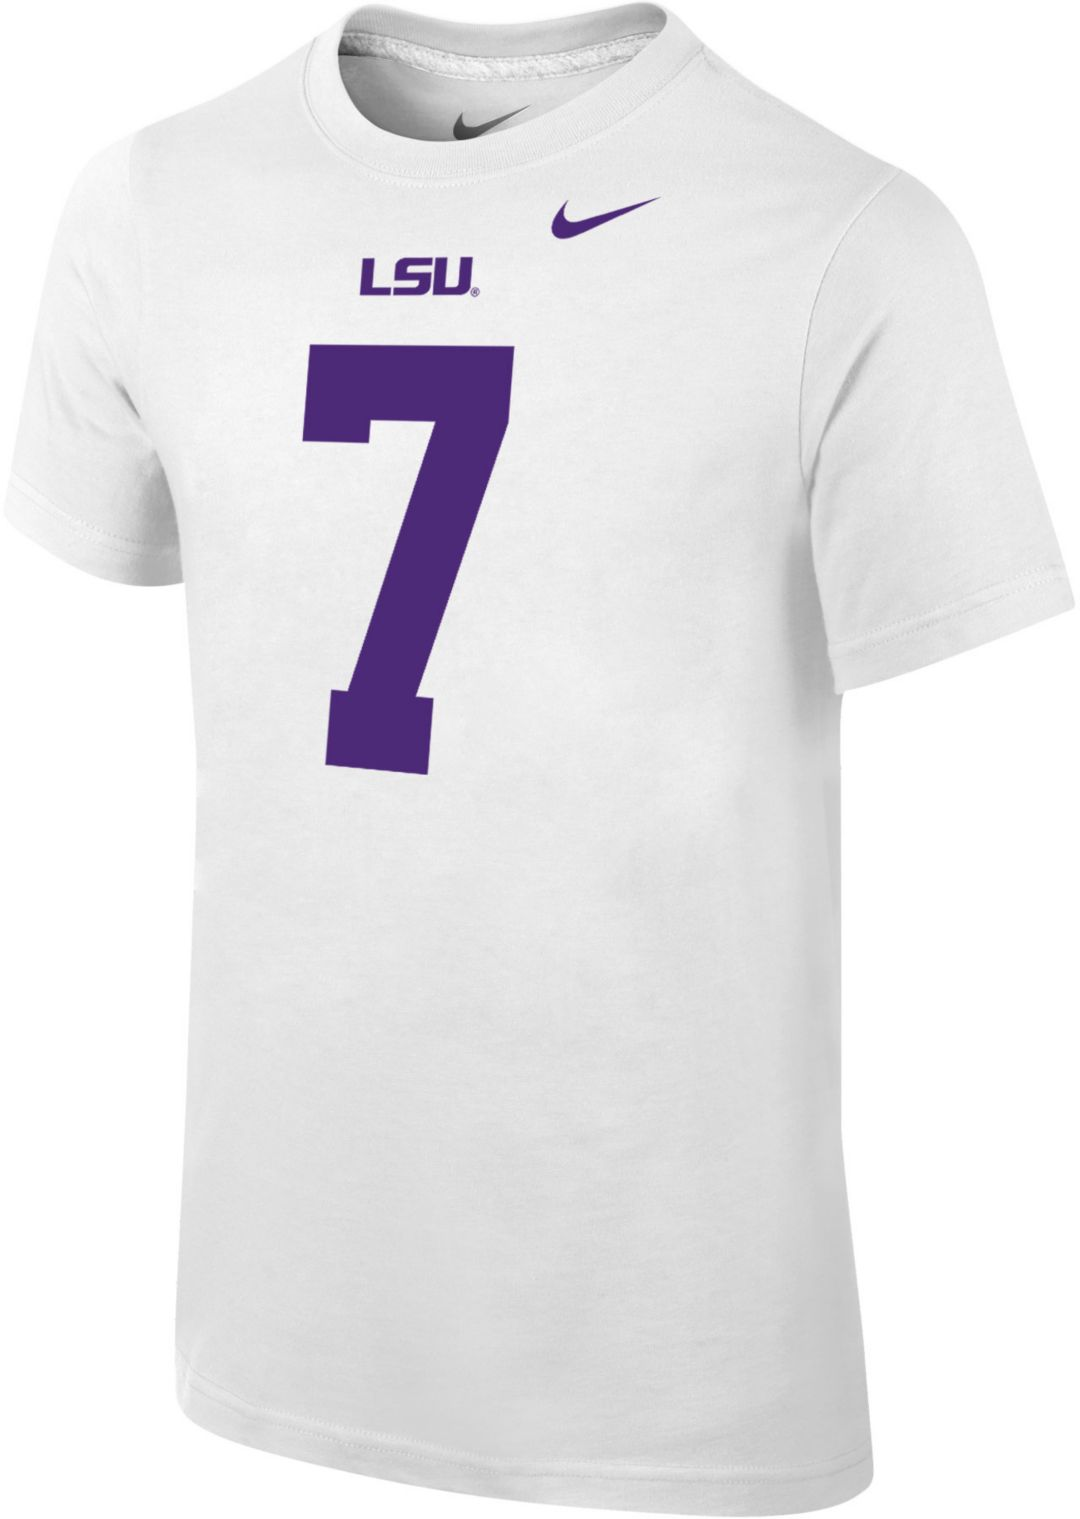 buy online 181db 72acf Nike Youth Leonard Fournette LSU Tigers #7 Cotton Football Jersey White  T-Shirt